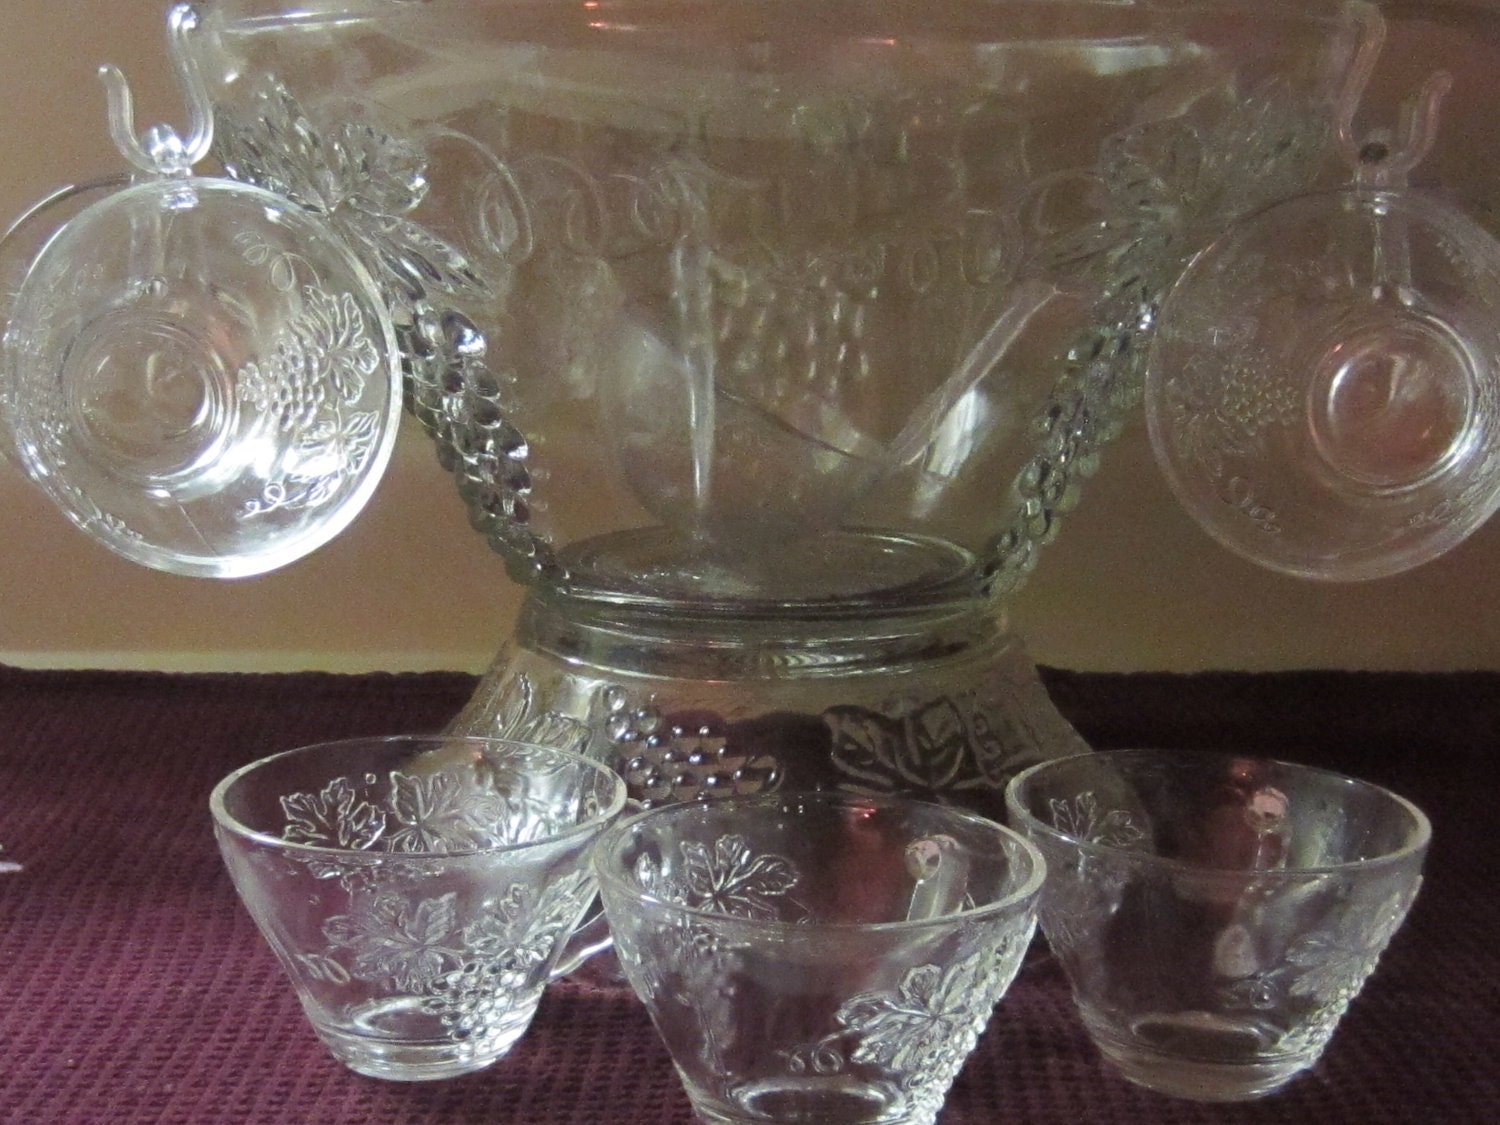 Amazoncom Vintage Glass Punch Bowl Set: Mixed